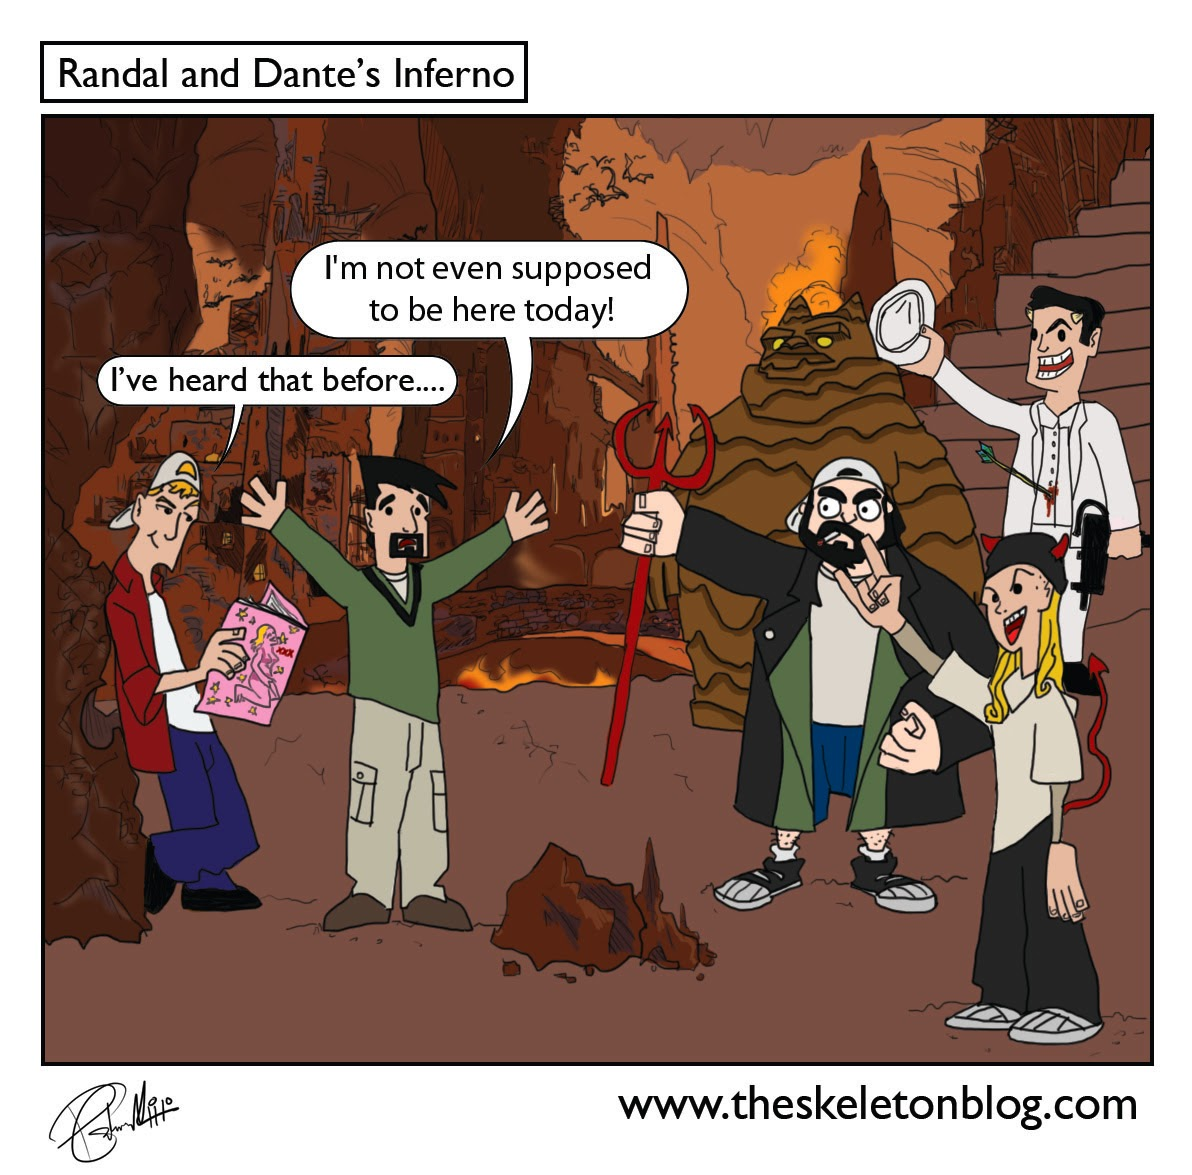 quote dante inferno essay 91 121 113 106 analysis of dante s inferno essay 748 words bartleby